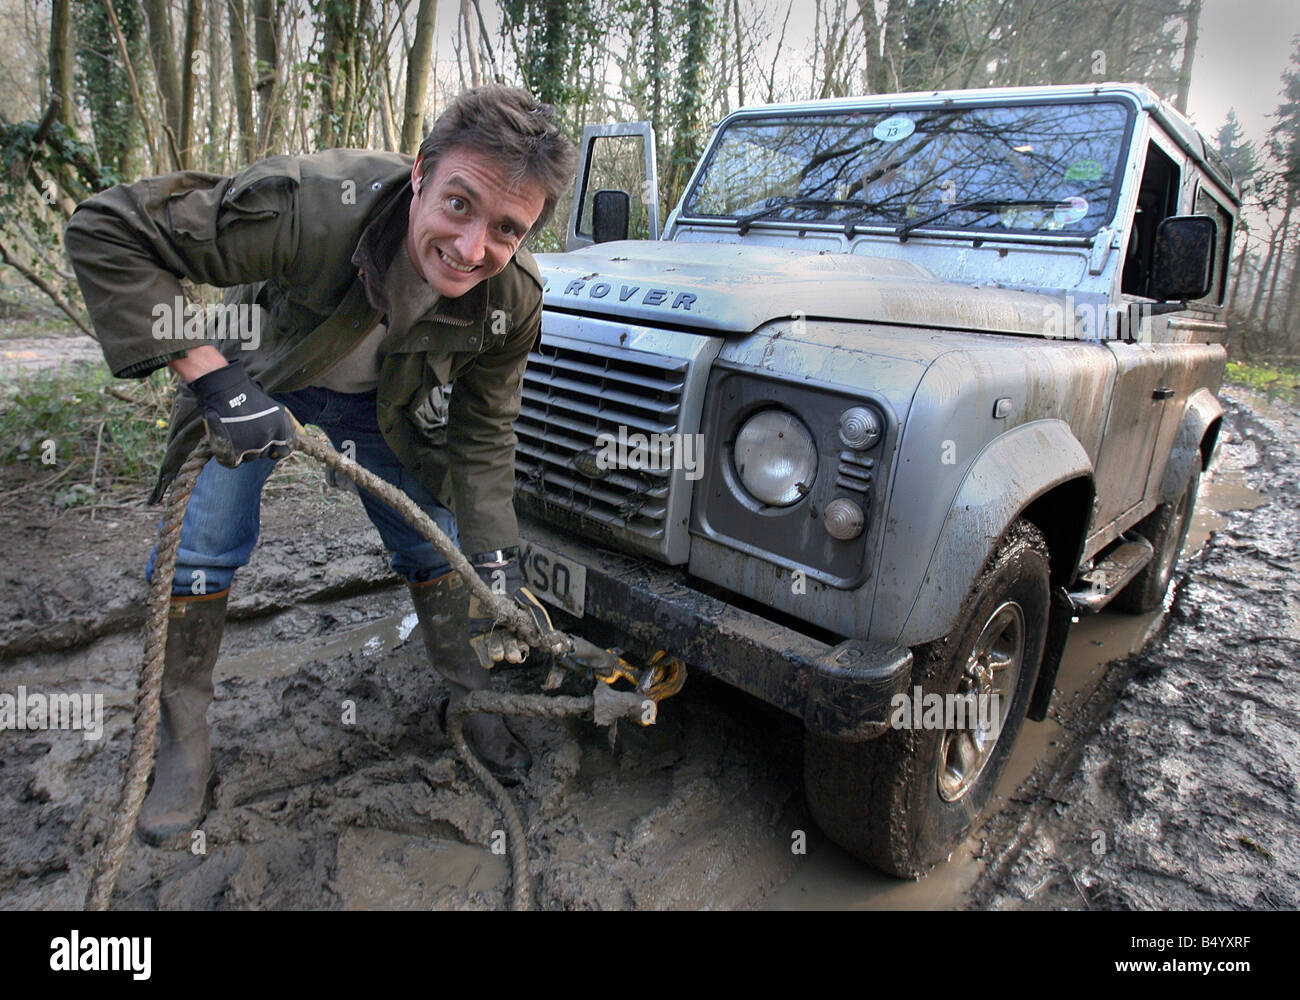 28 3 07 Richard Hammond road tests the new Land Rover Defender and